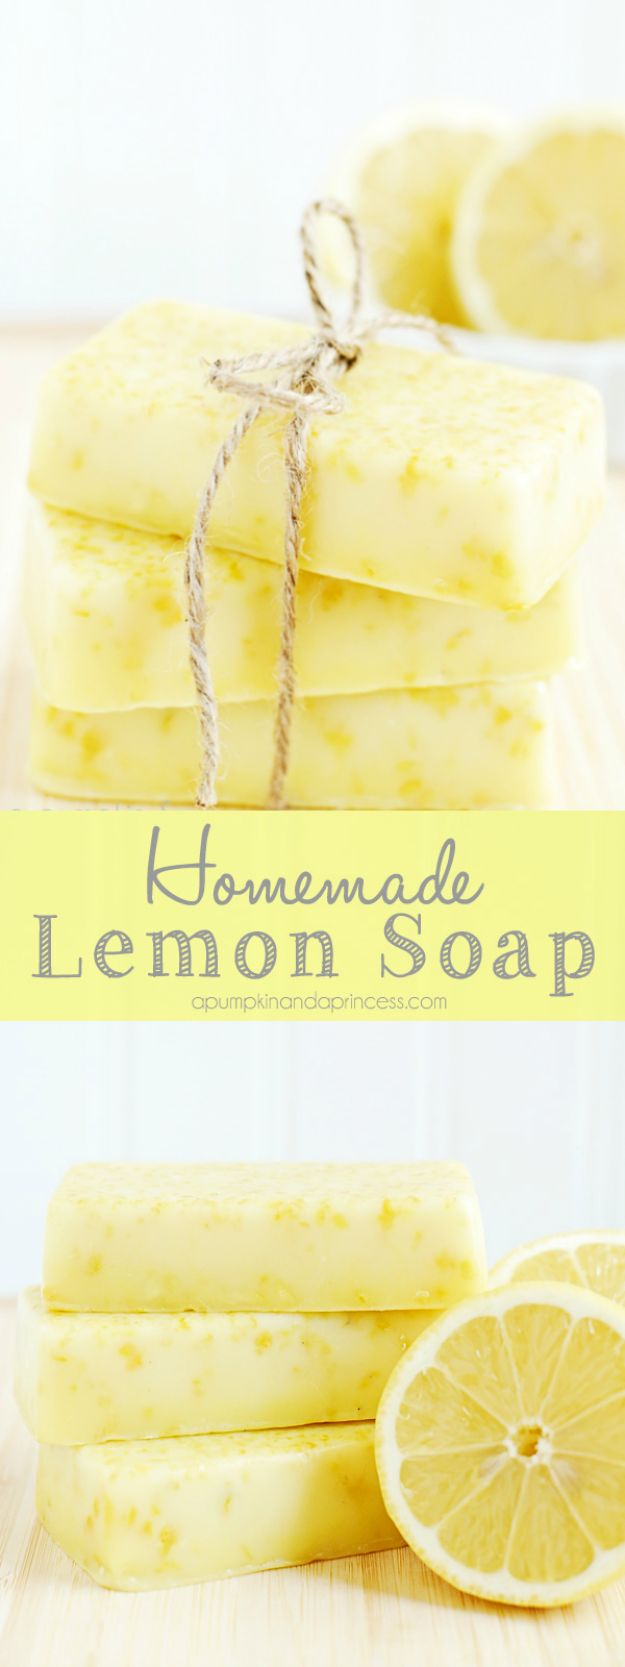 Soap Recipes DIY - Homemade Lemon Soap - DIY Soap Recipe Ideas - Best Soap Tutorials for Soap Making Without Lye - Easy Cold Process Melt and Pour Tips for Beginners - Crockpot, Essential Oils, Homemade Natural Soaps and Products - Creative Crafts and DIY for Teens, Kids and Adults #soaprecipes #diygifts #soapmaking